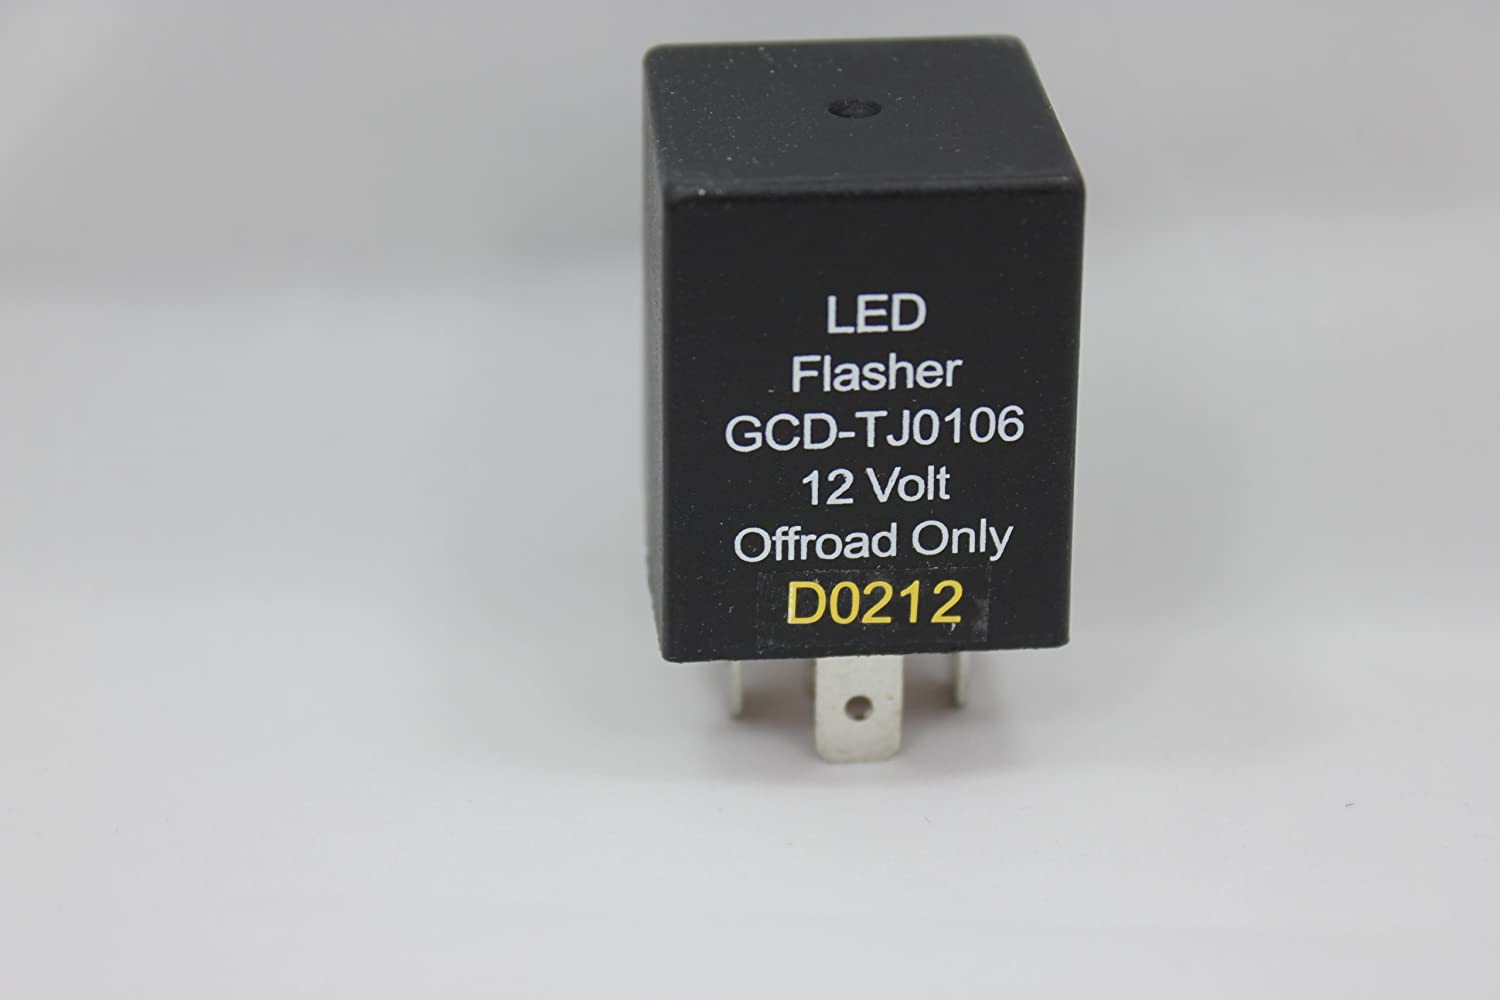 JEEP TJ WRANGLER 2001-2006 LED FLASHER RELAY FOR CHANGING TO LED TAIL LIGHTS